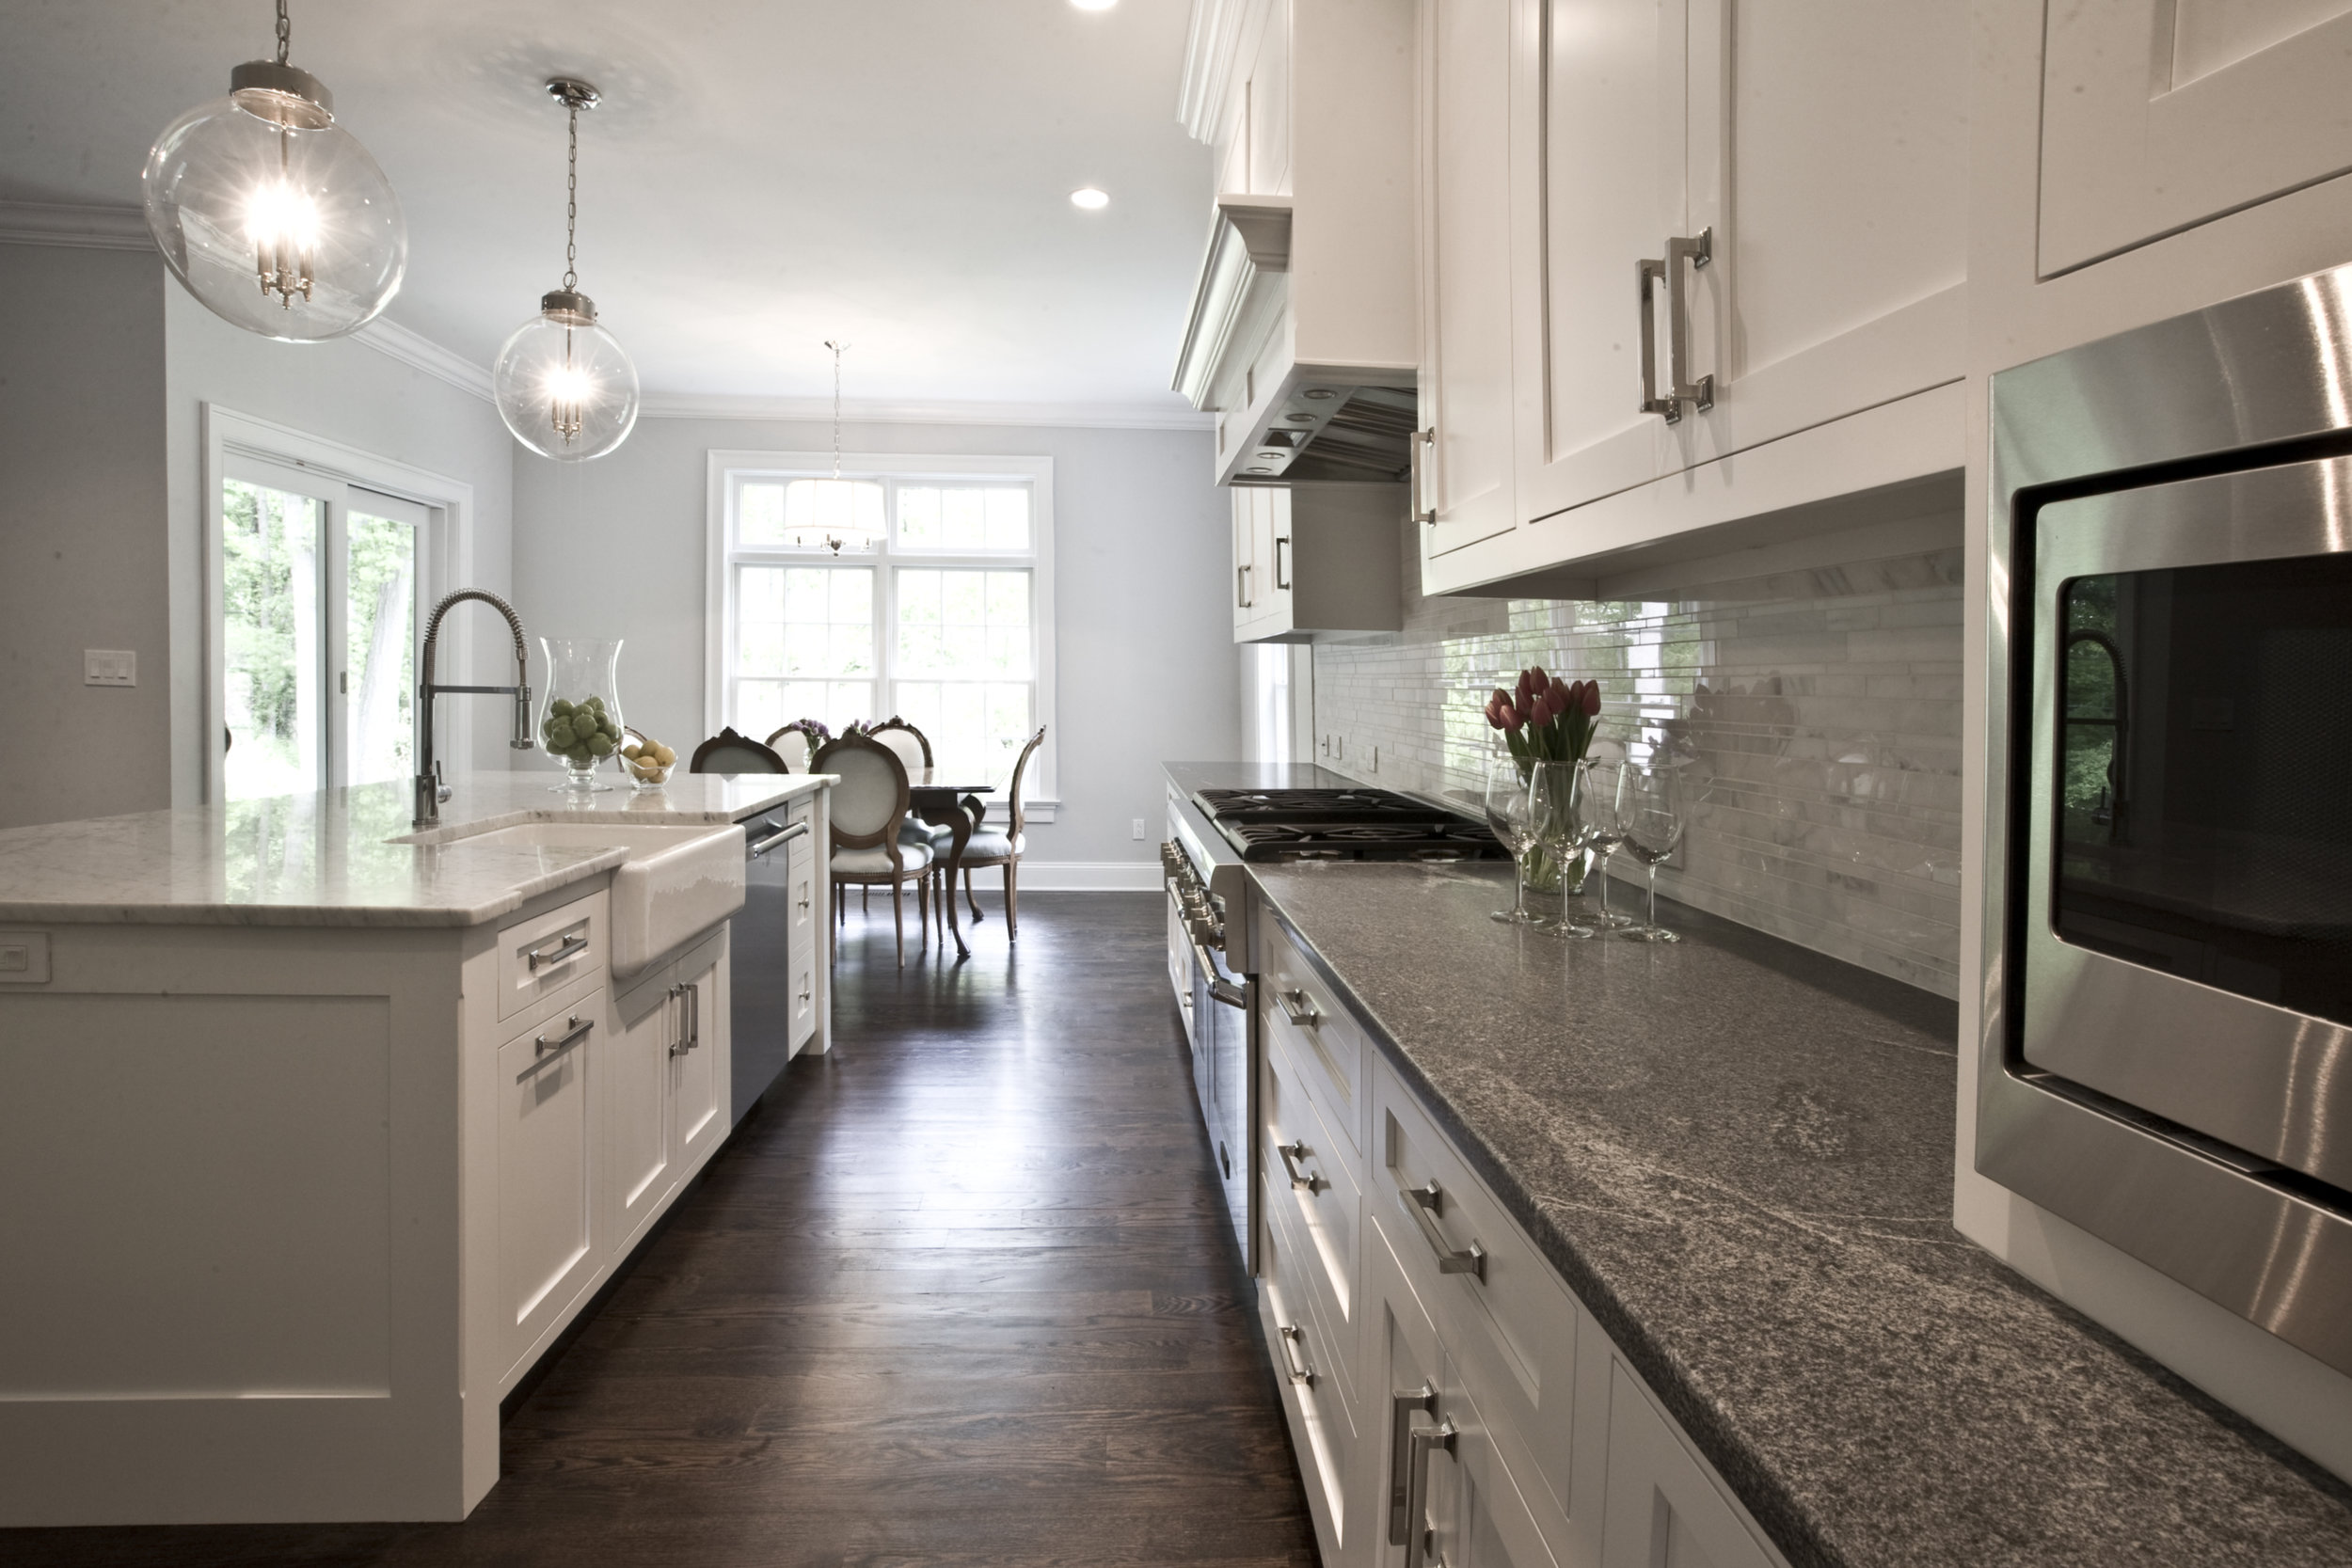 MATERIALS USED: SOAPSTONE COUNTER, CARERRA MARBLE ISLAND